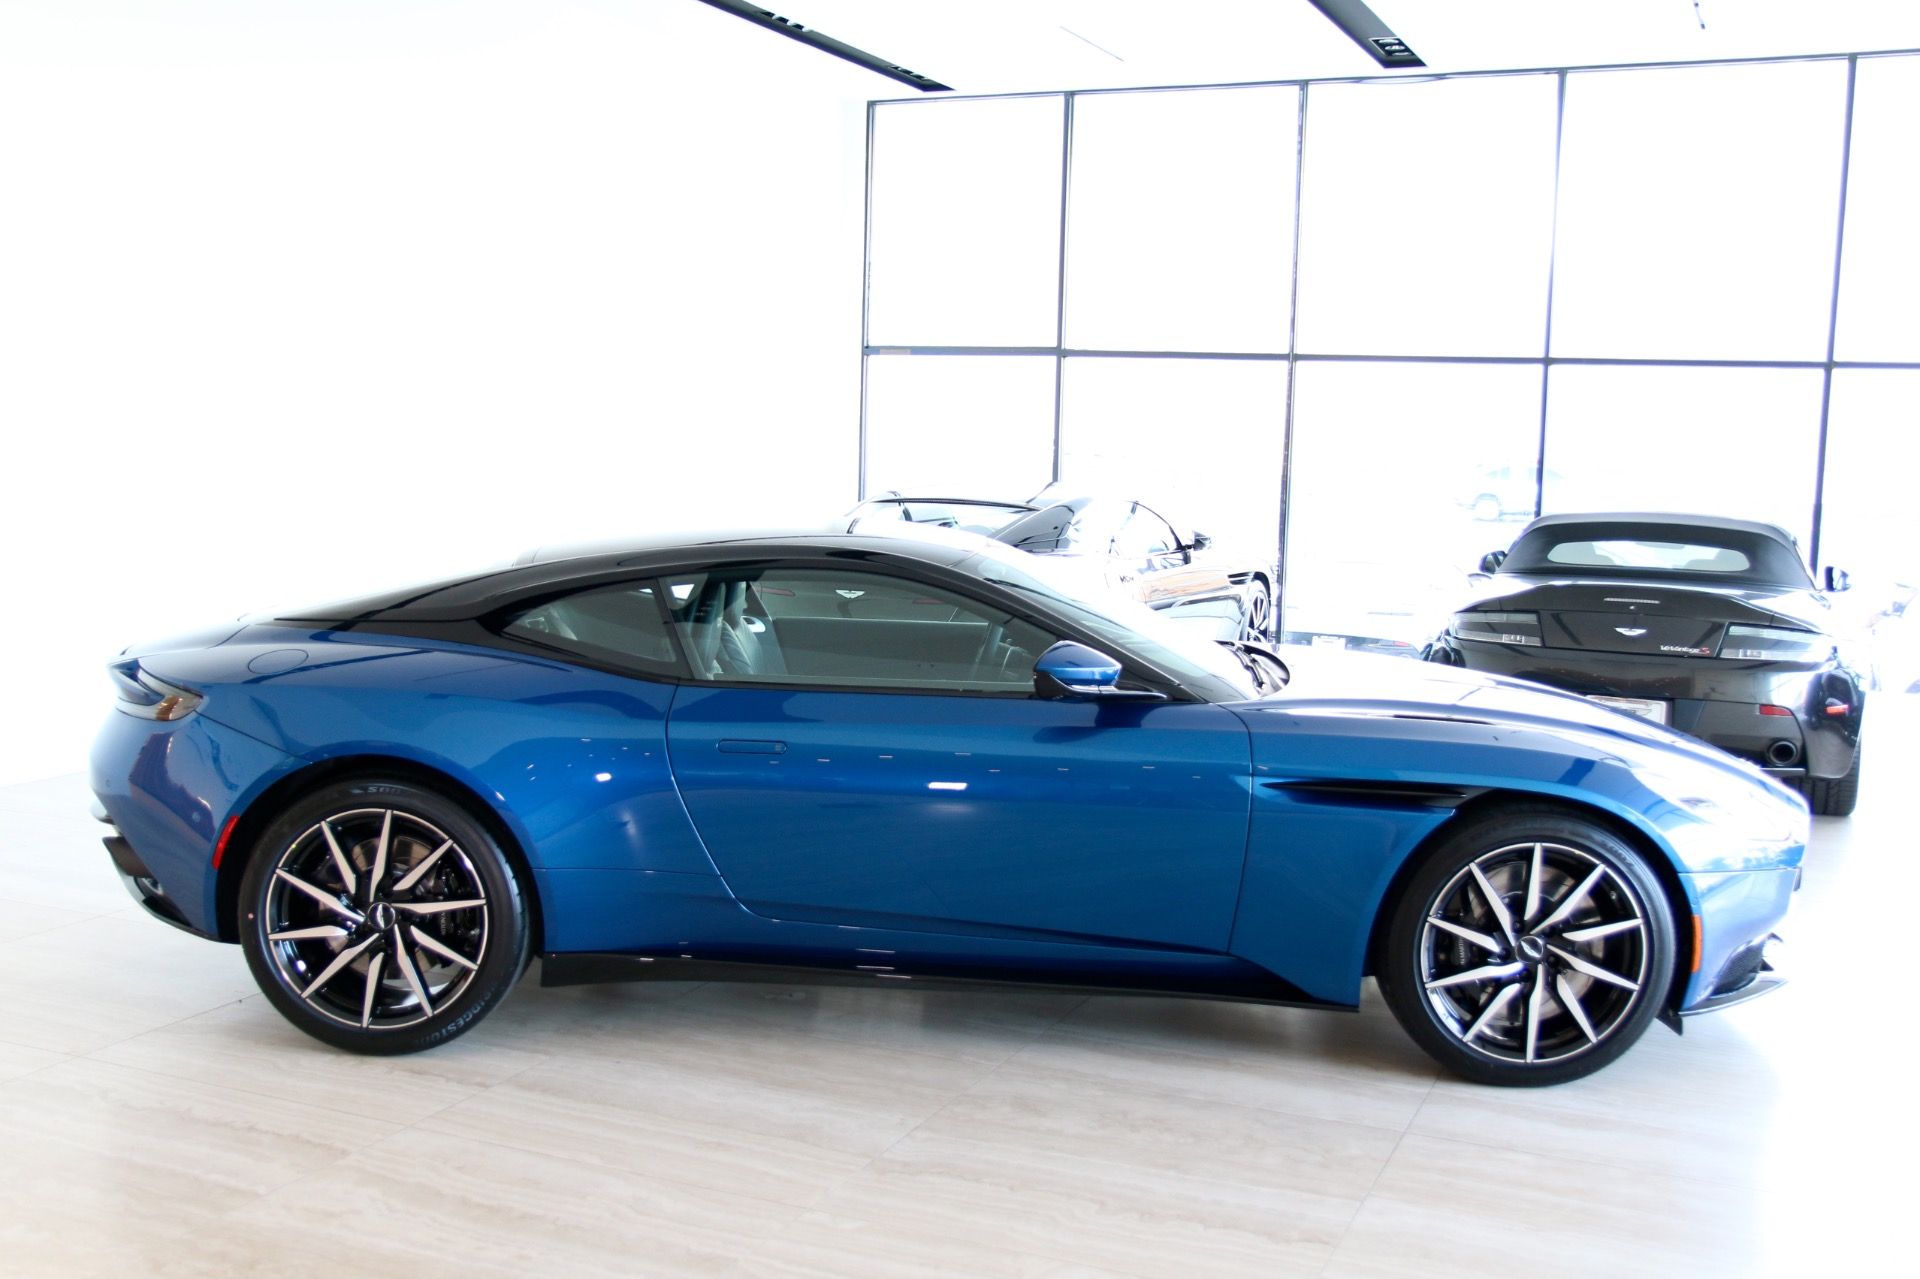 2018 Aston Martin Db11 V12 Stock 8n03312 For Sale Near Vienna Va